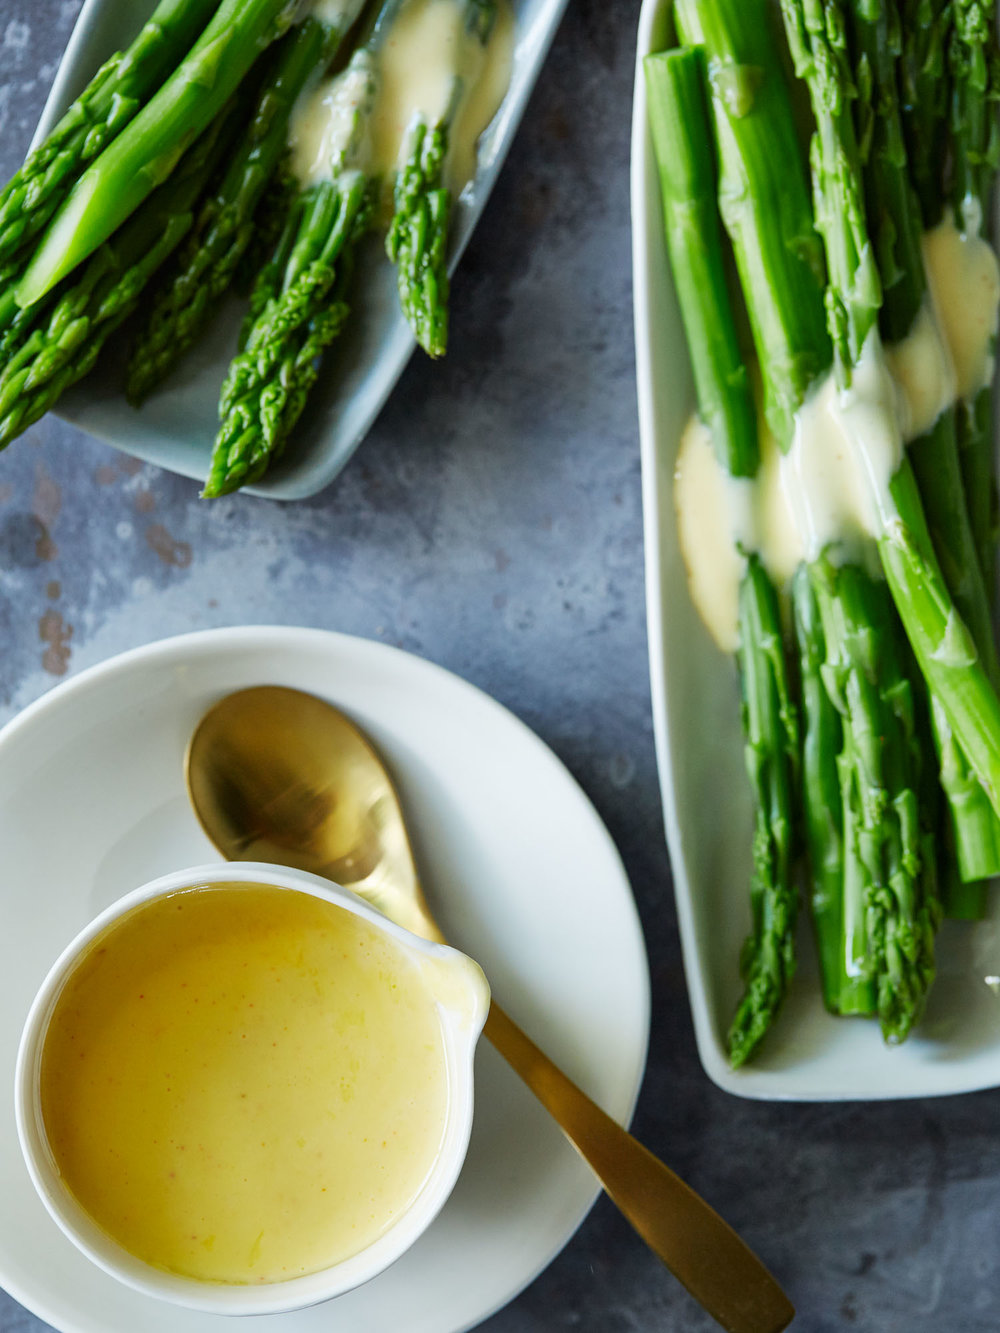 20150915_Tia_Dressings_Hollandaise_024.jpg